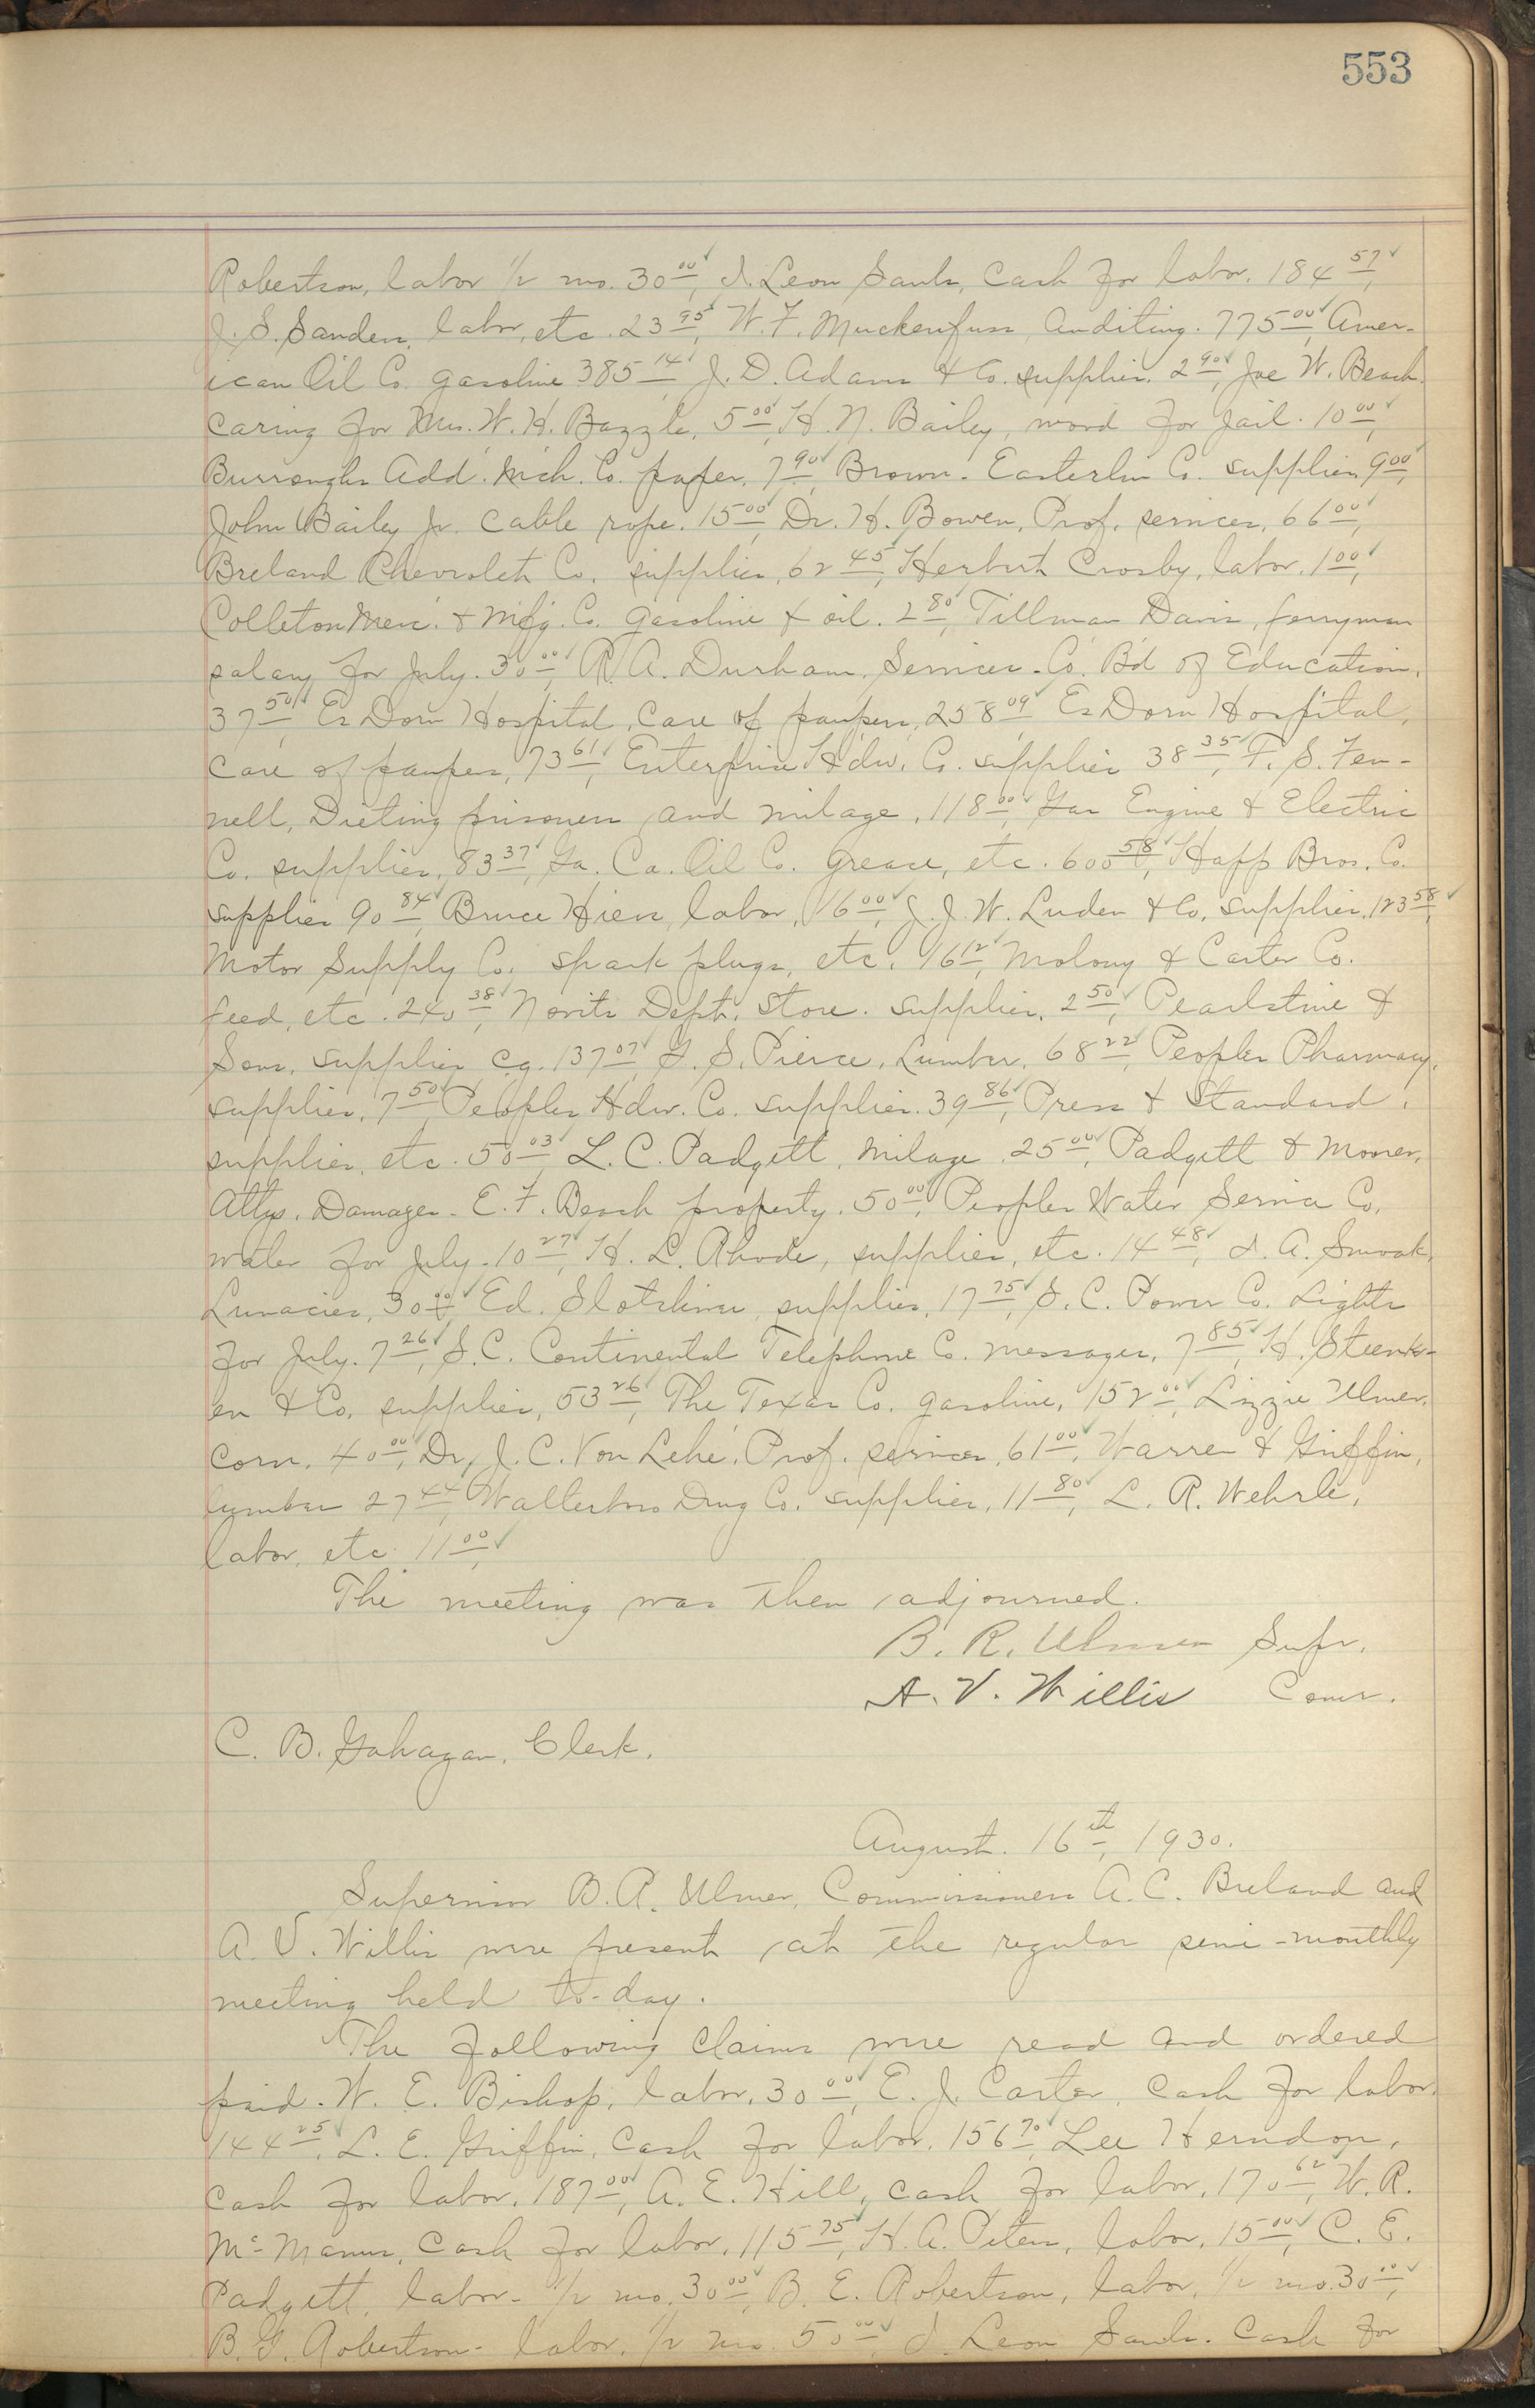 Colleton County Highway Commission Ledger, Page 553